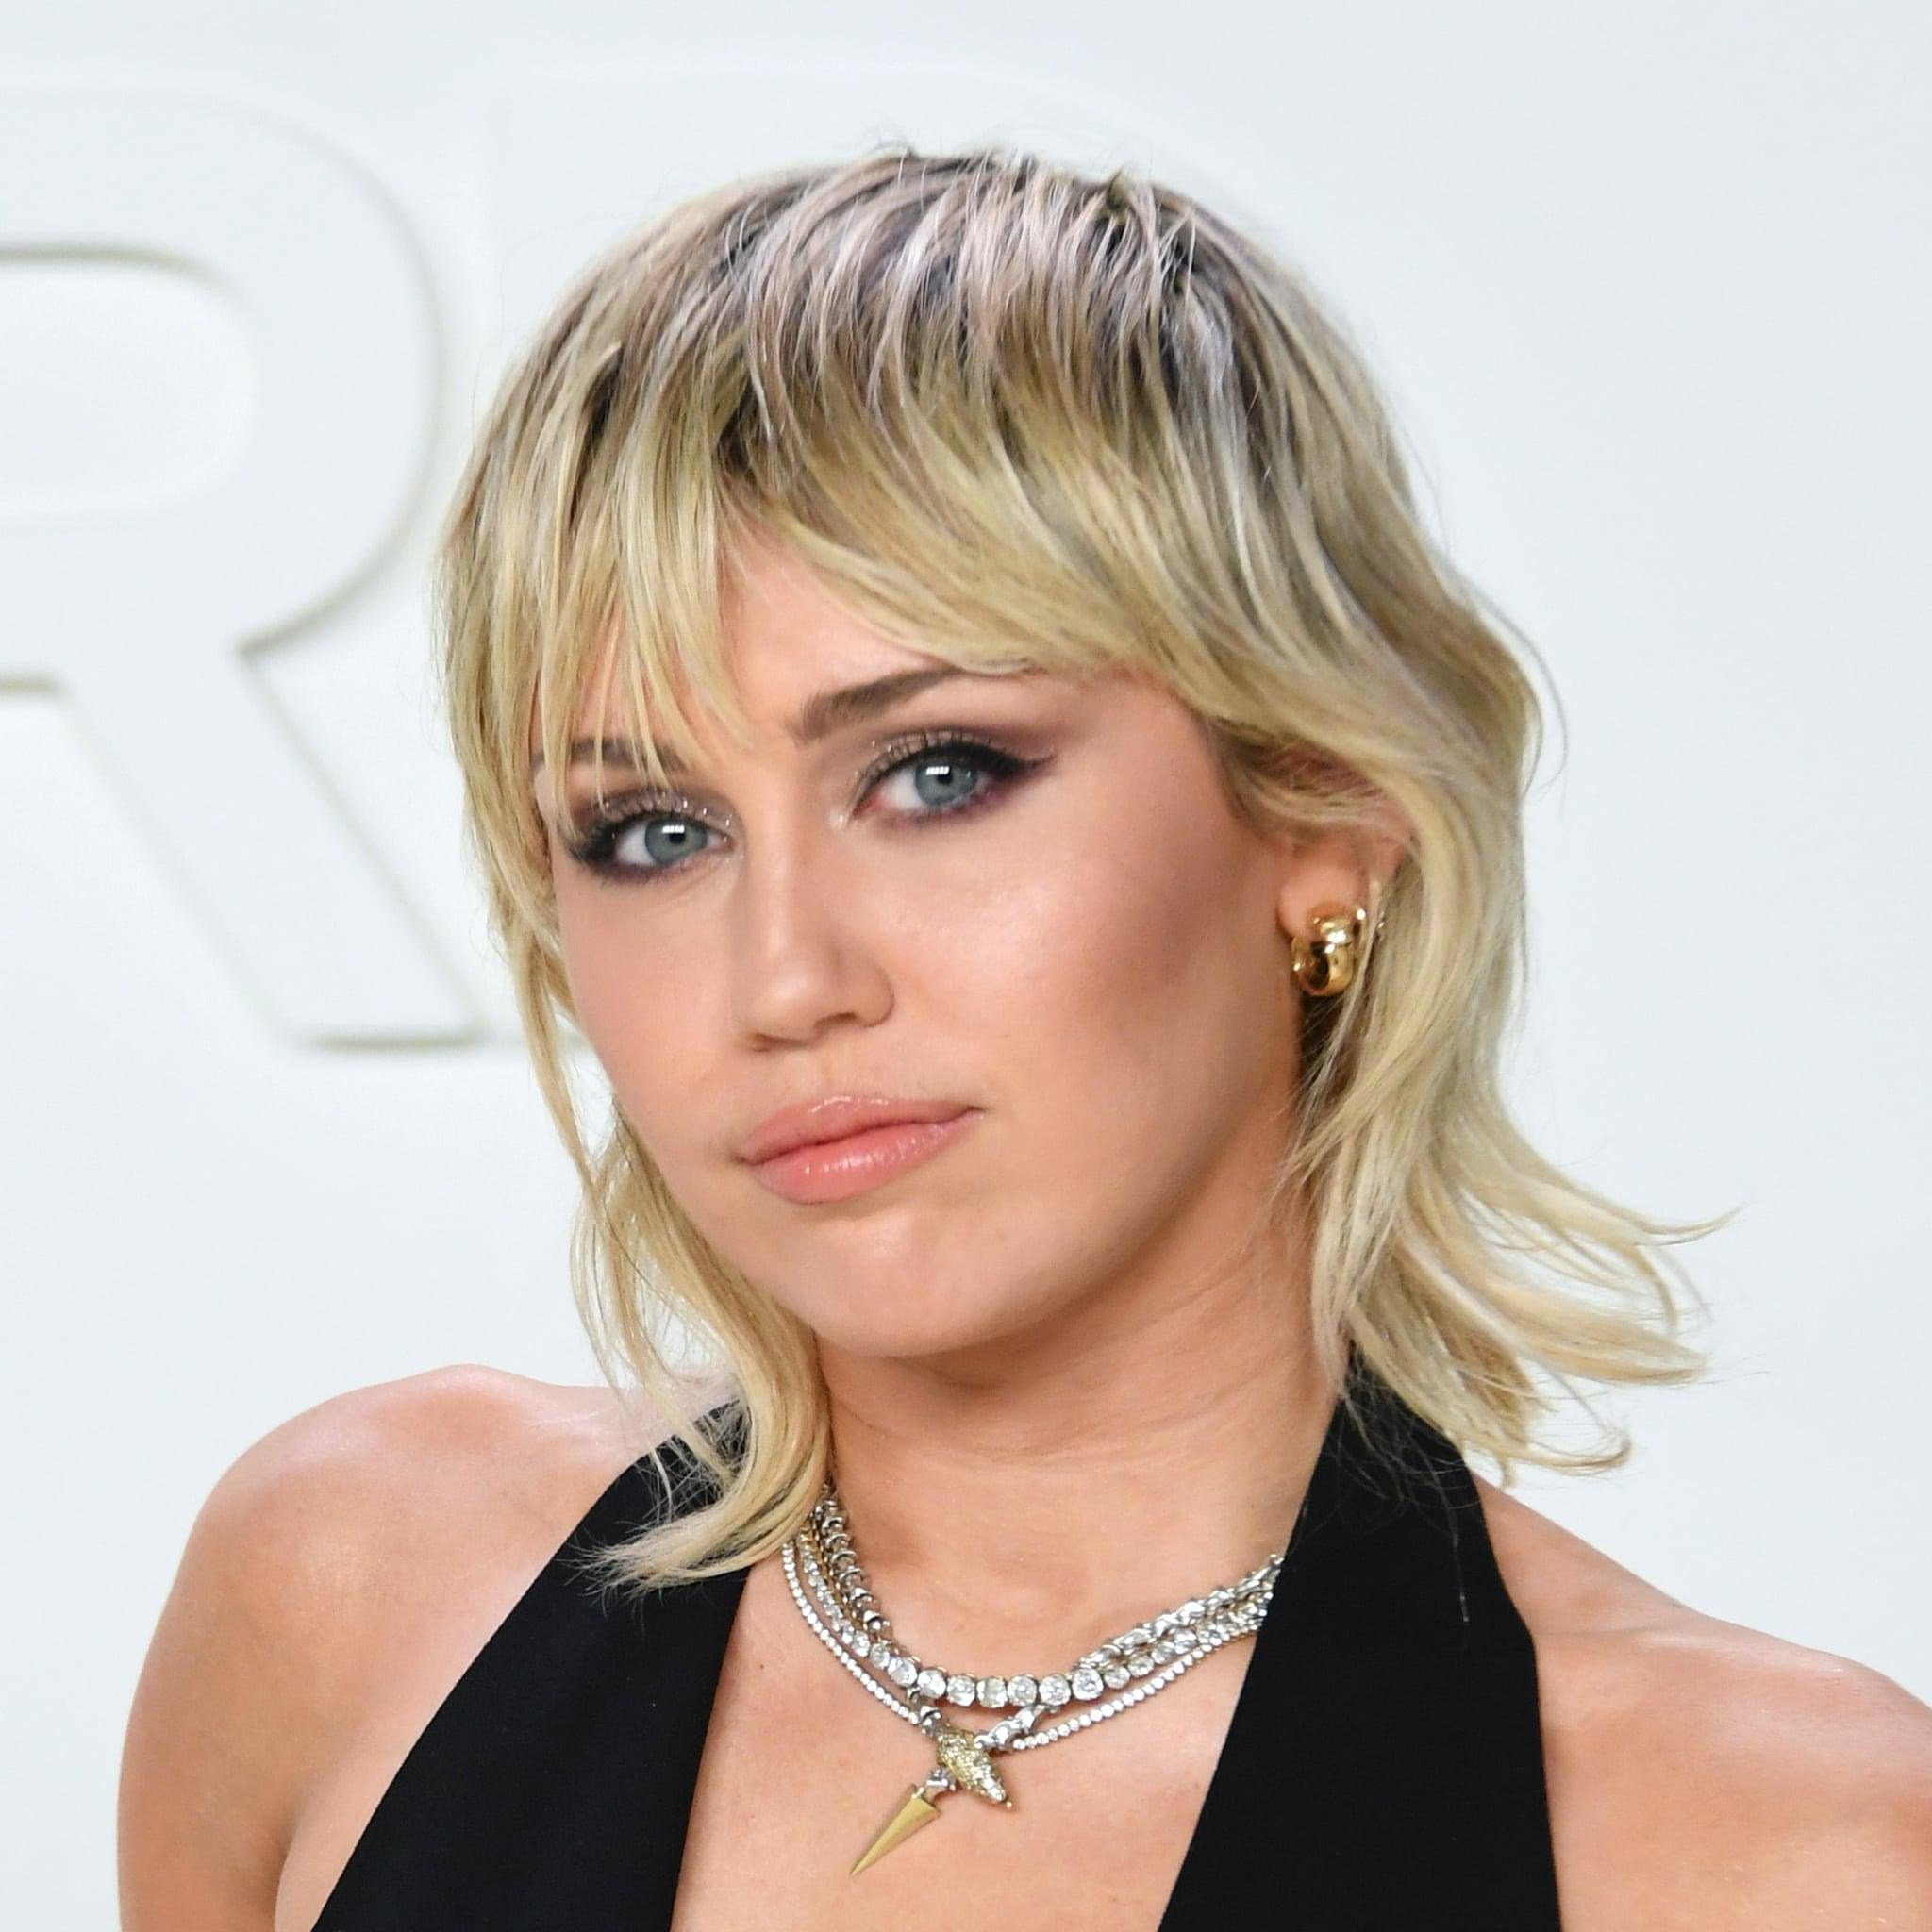 It S A Desperate Time Miley Cyrus Stresses The Importance Of Voting In The 2020 Election